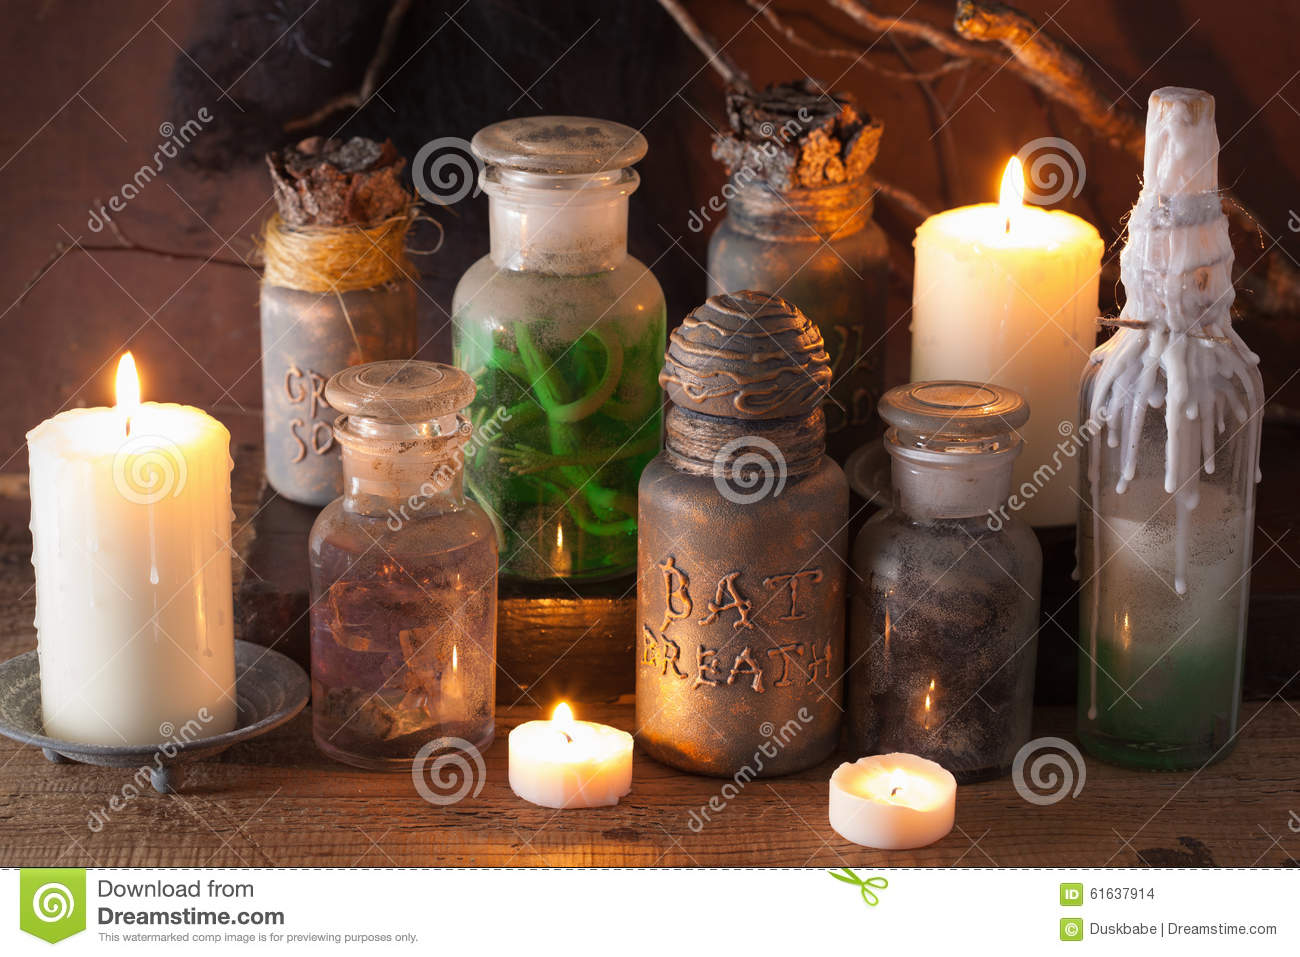 Harry Potter Fall Wallpaper Witch Apothecary Jars Magic Potions Halloween Decoration